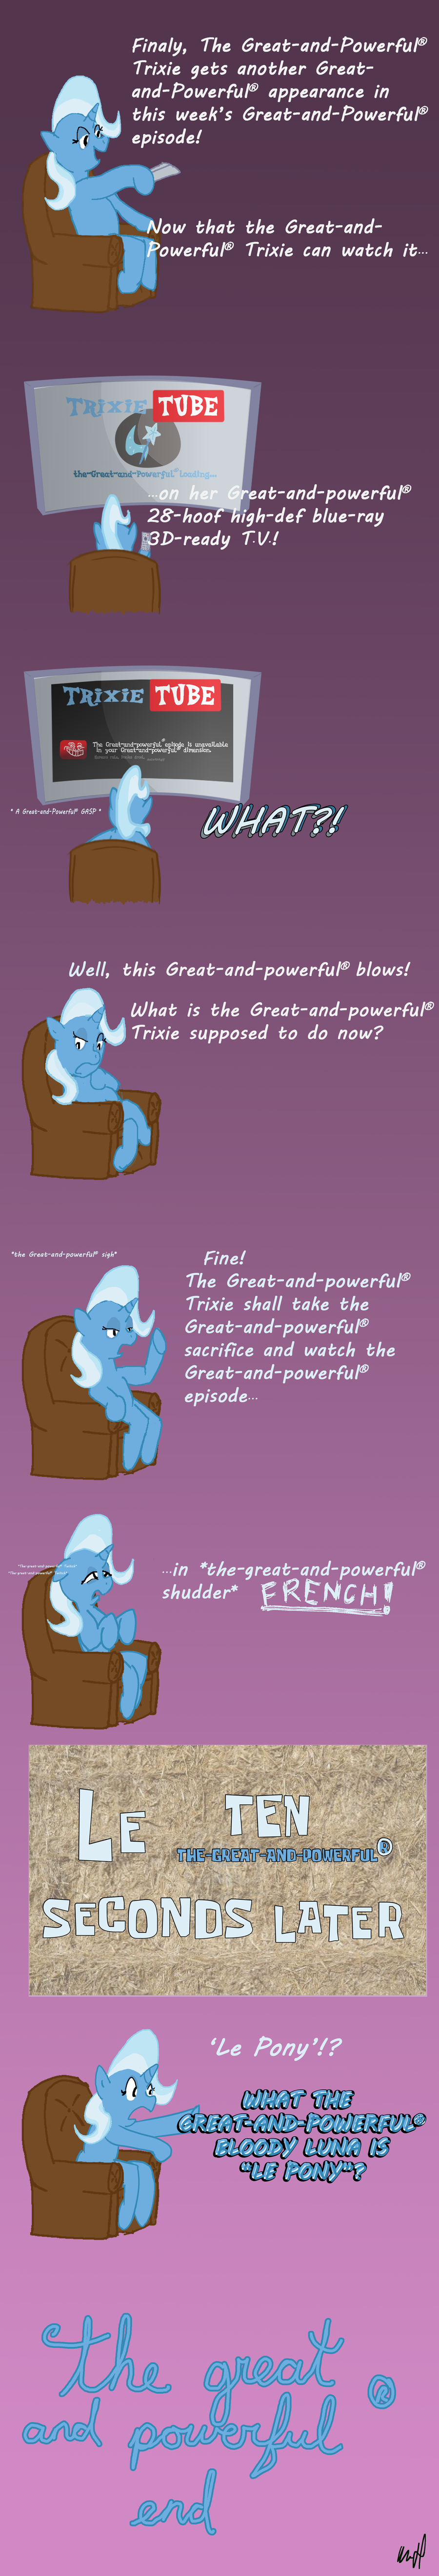 The Great and Powerful (r) comic by Fundz64